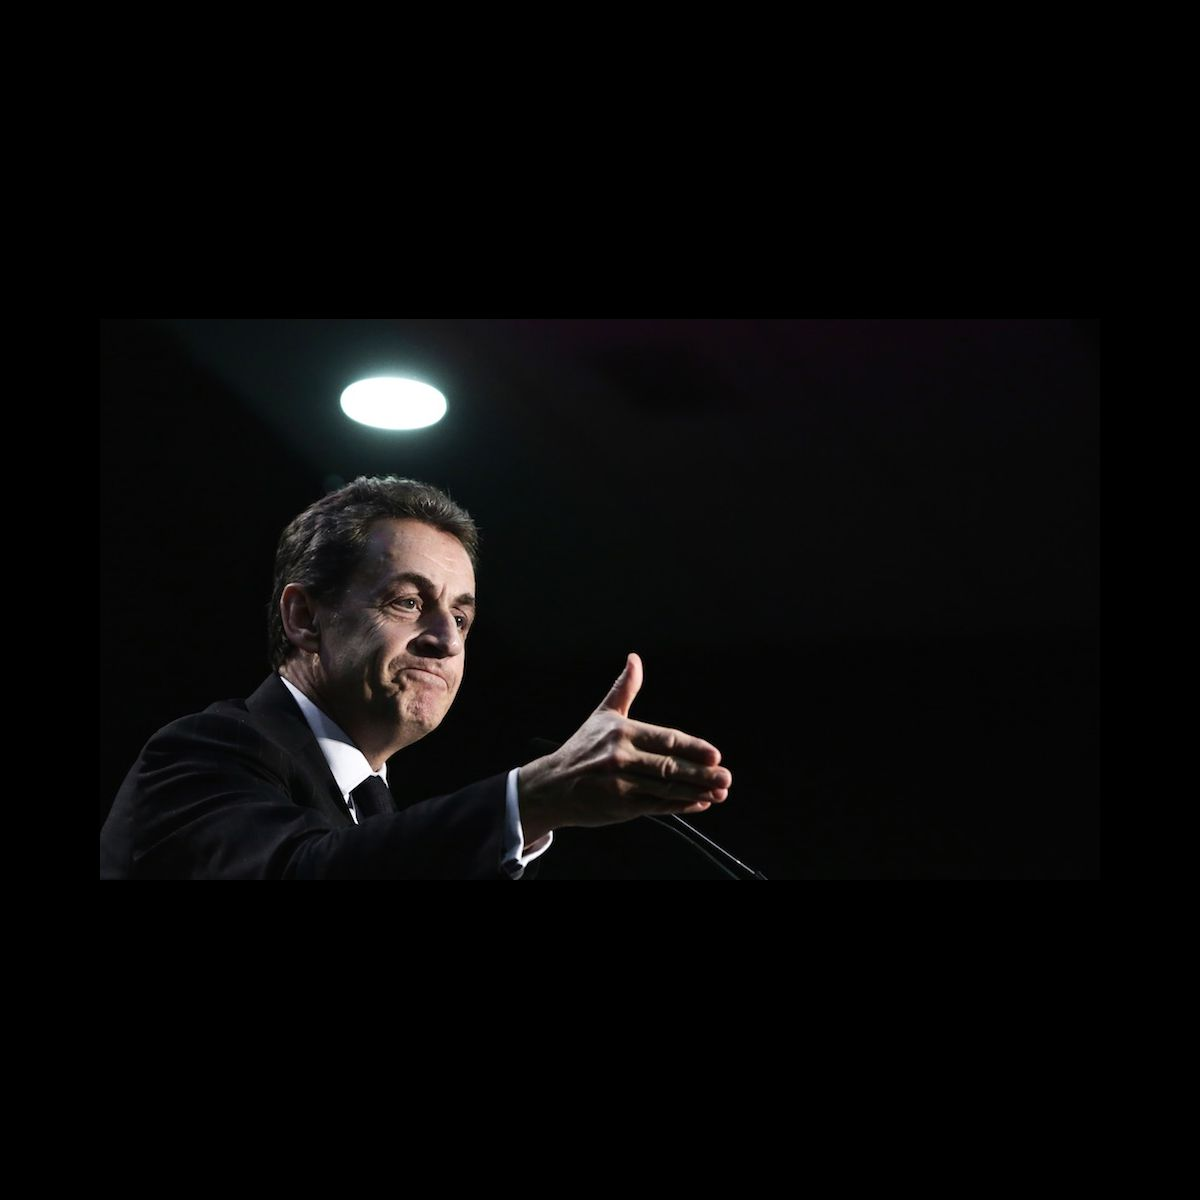 nicolas sarkozy porte plainte contre le parisien photo puremedias. Black Bedroom Furniture Sets. Home Design Ideas